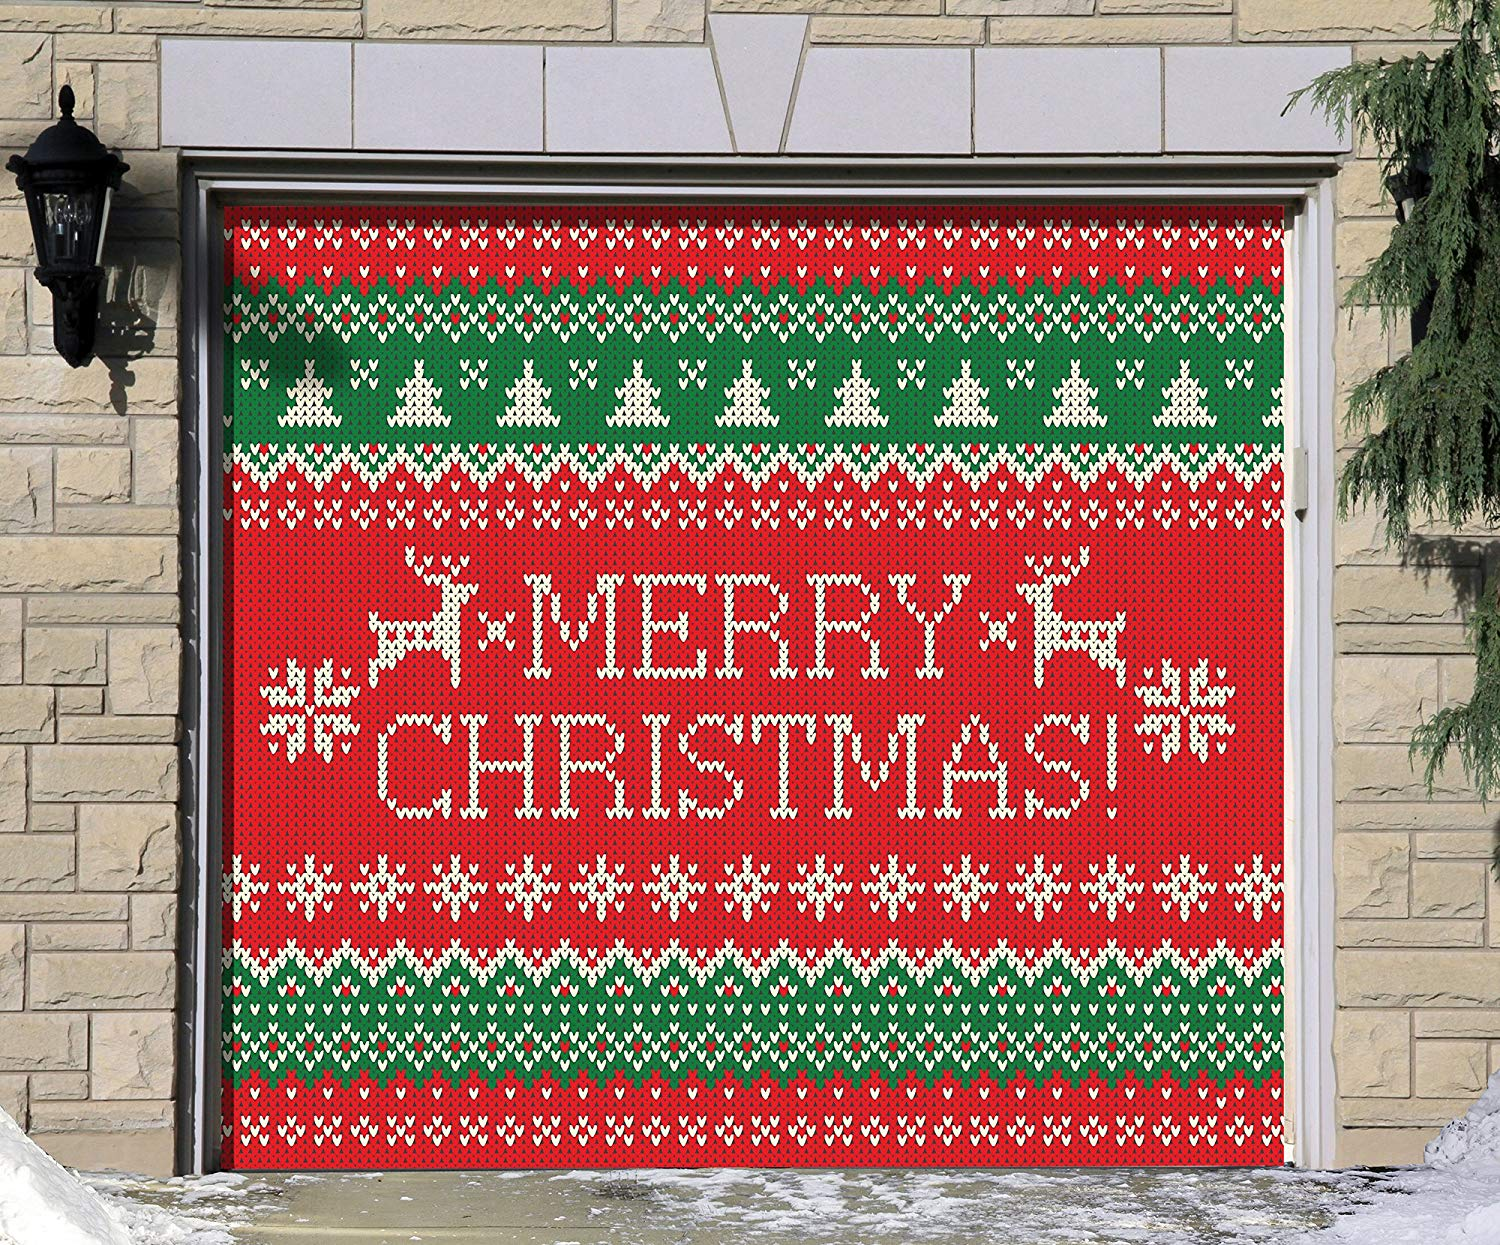 Victory Corps Outdoor Christmas Holiday Garage Door Banner Cover Mural Décoration - Ugly Christmas Sweater Merry Christmas - Outdoor Christmas Holiday Garage Door Banner Décor Sign 7'x8'